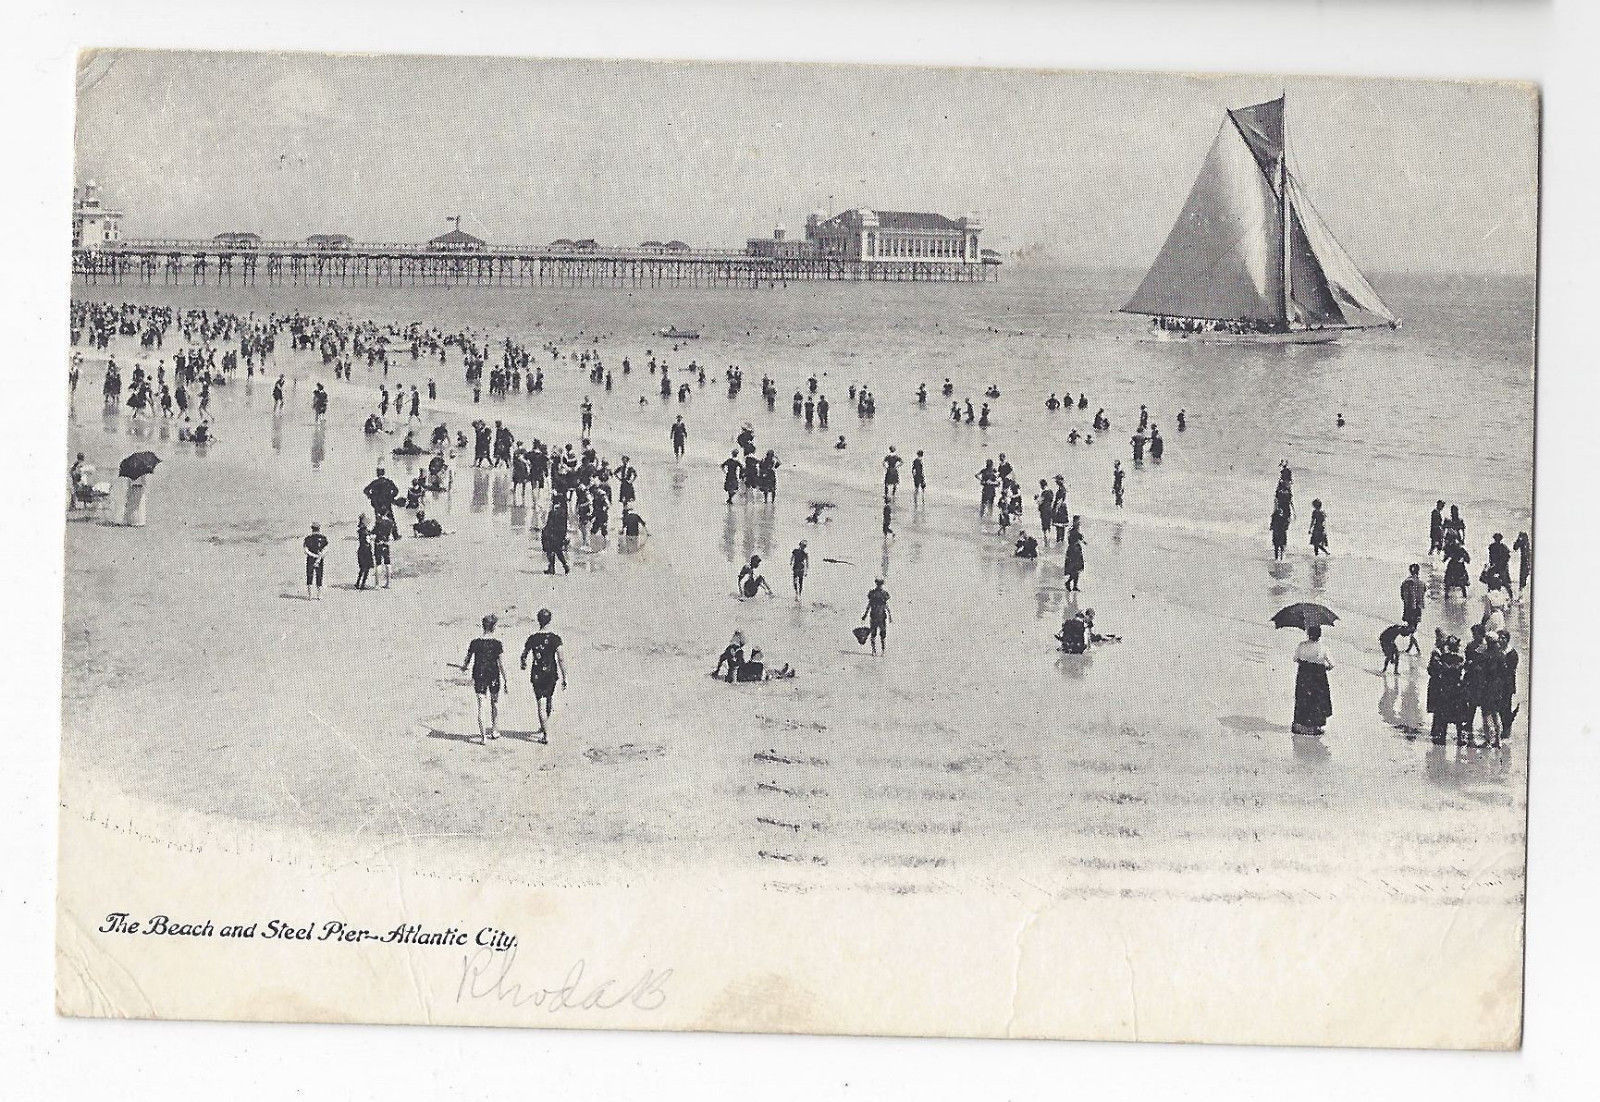 Atlantic City NJ Steel Pier and Beach Sailboat Bathers Vtg 1907 Postcard